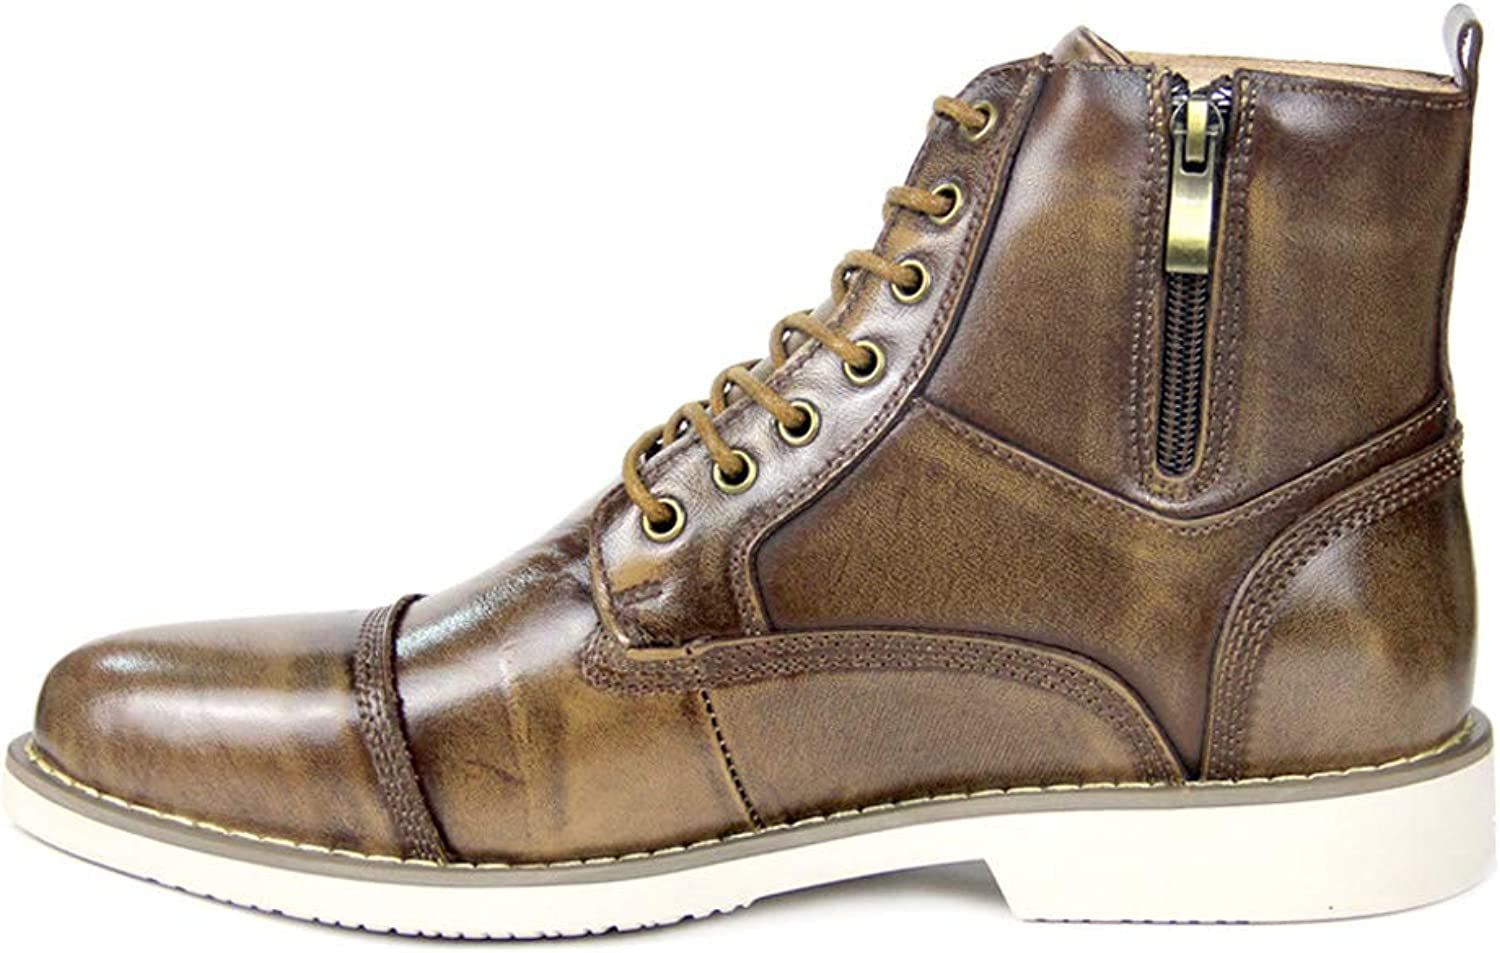 Waterproof high-top Men's shoes, Leather lace-up Boots, Men's Martin Boots, Casual shoes, Men